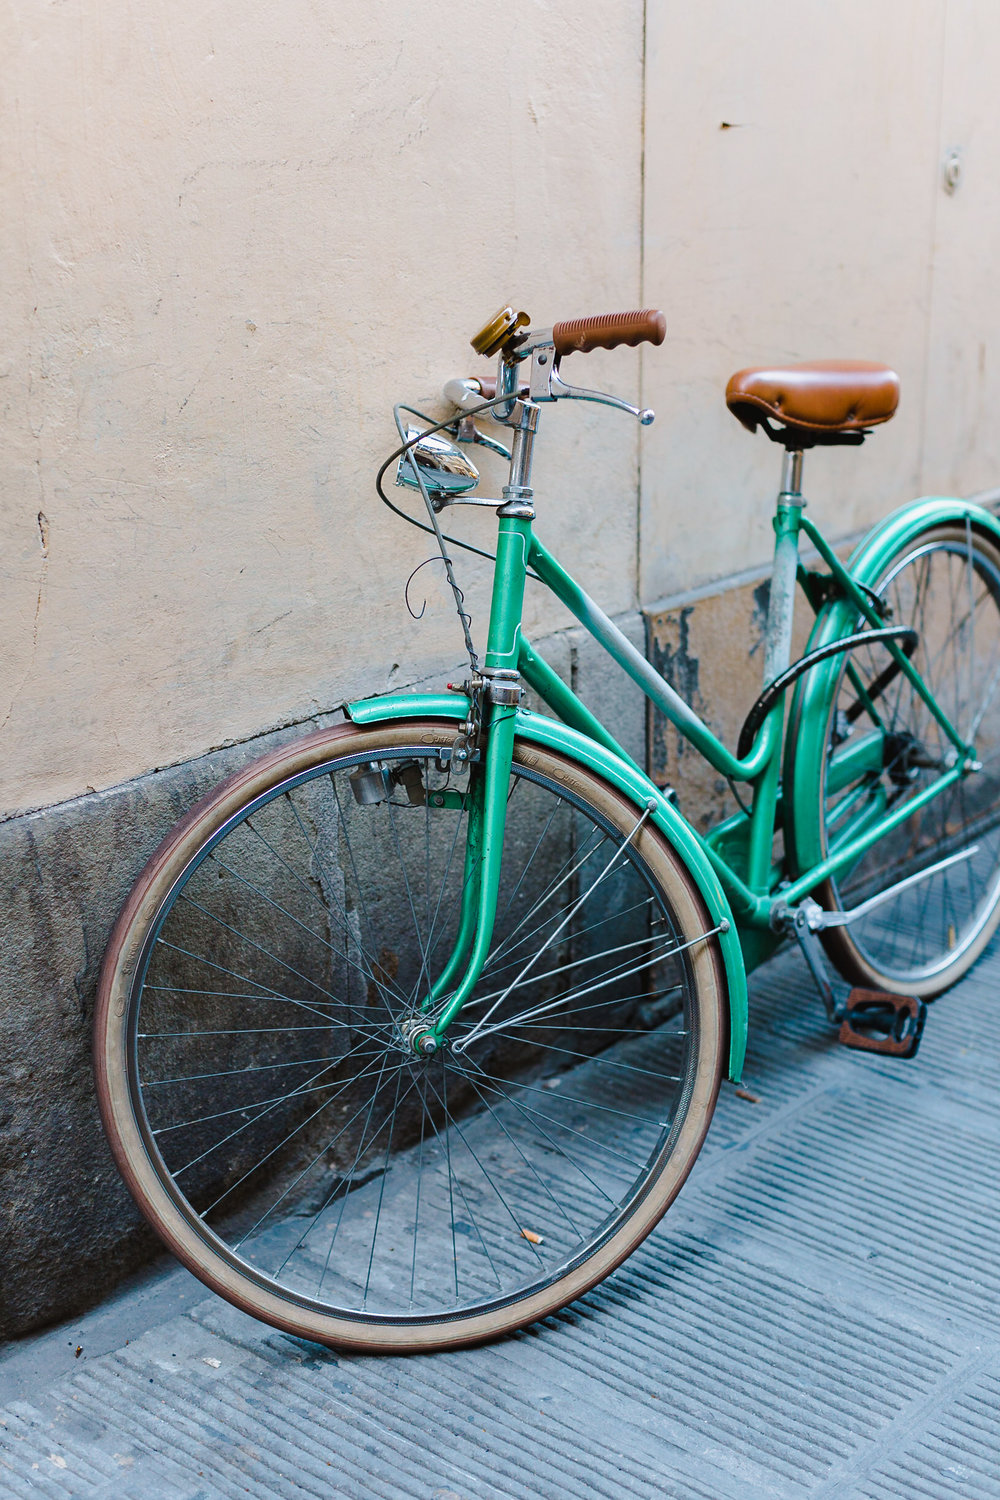 Seafoam Bike Florence (1 of 1).jpg